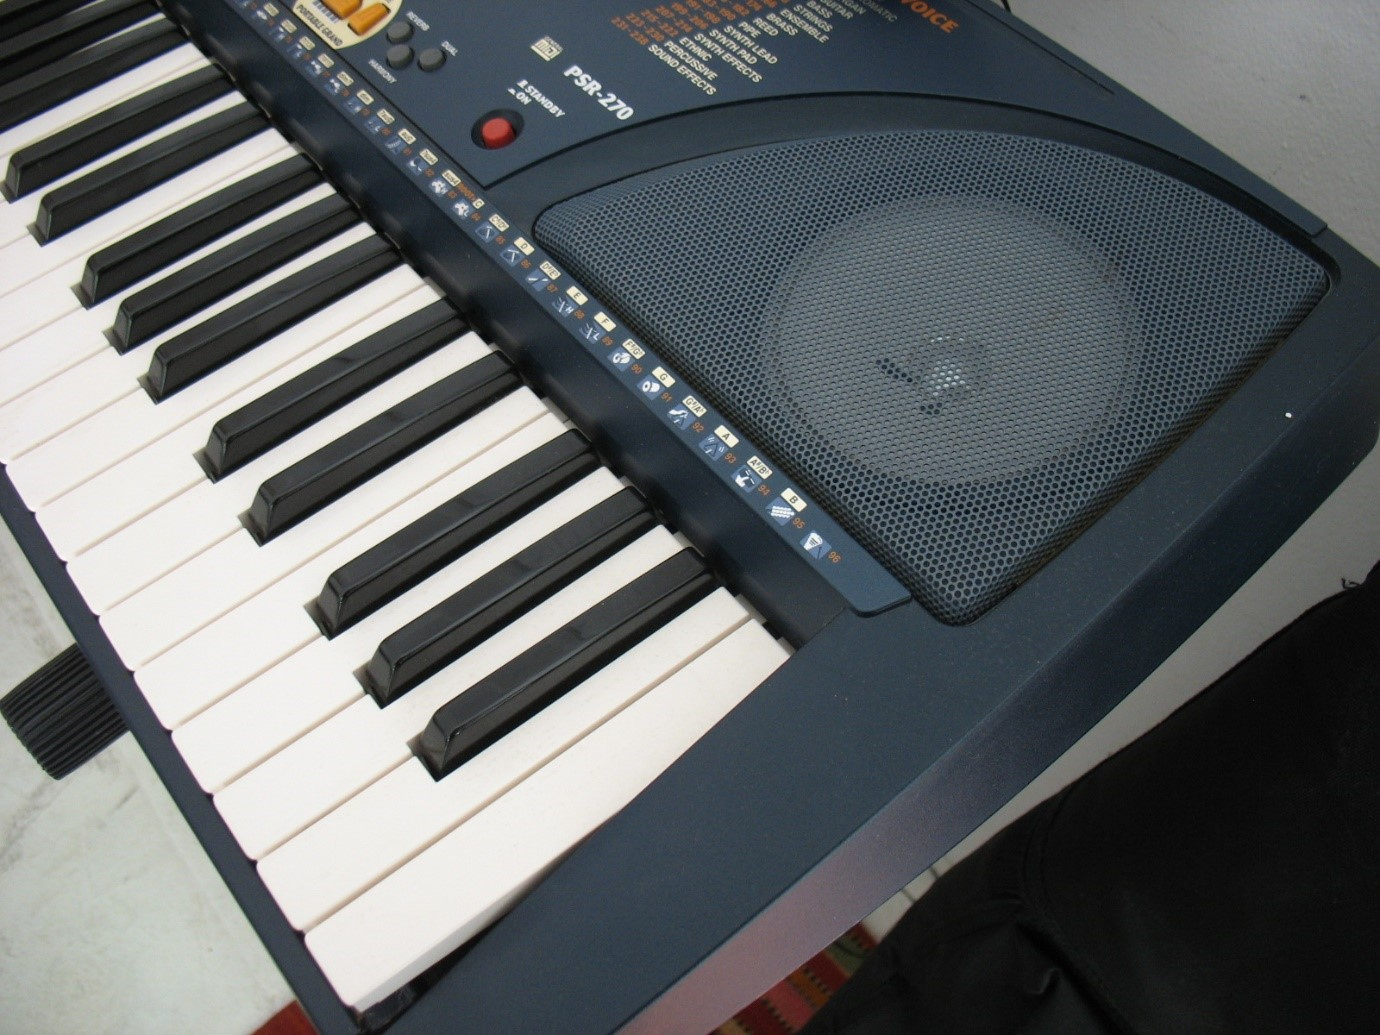 BUYING THE BEST PIANO VST